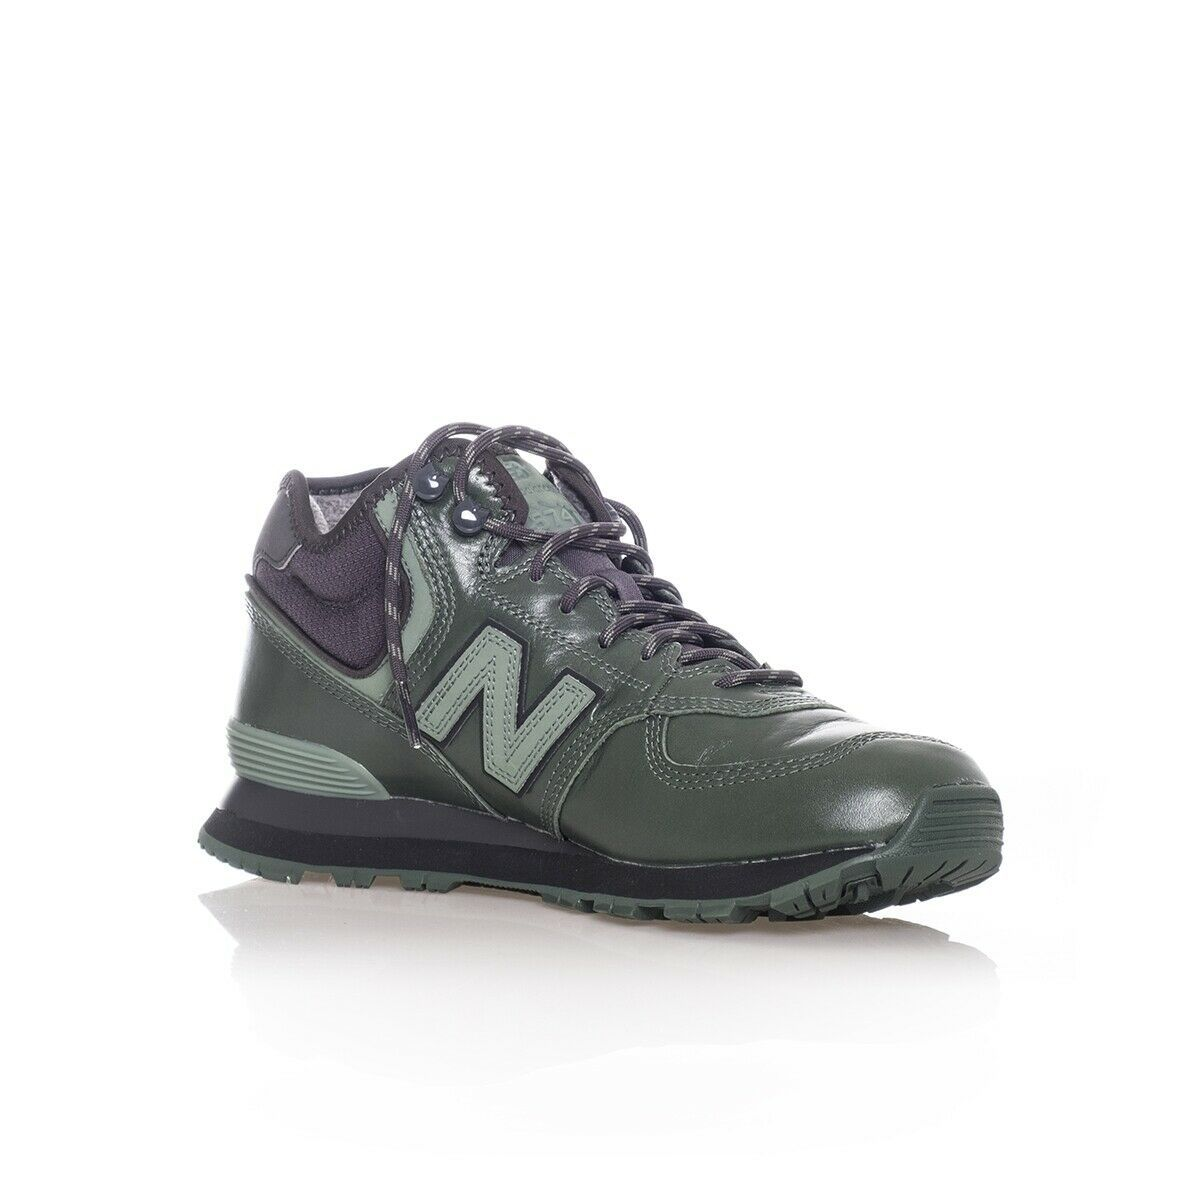 NEW BALANCE LIFESTYLE 574 SCHUHE HERREN MH574OAB SNEAKERS SNKRSROOM TRIBES NEW B